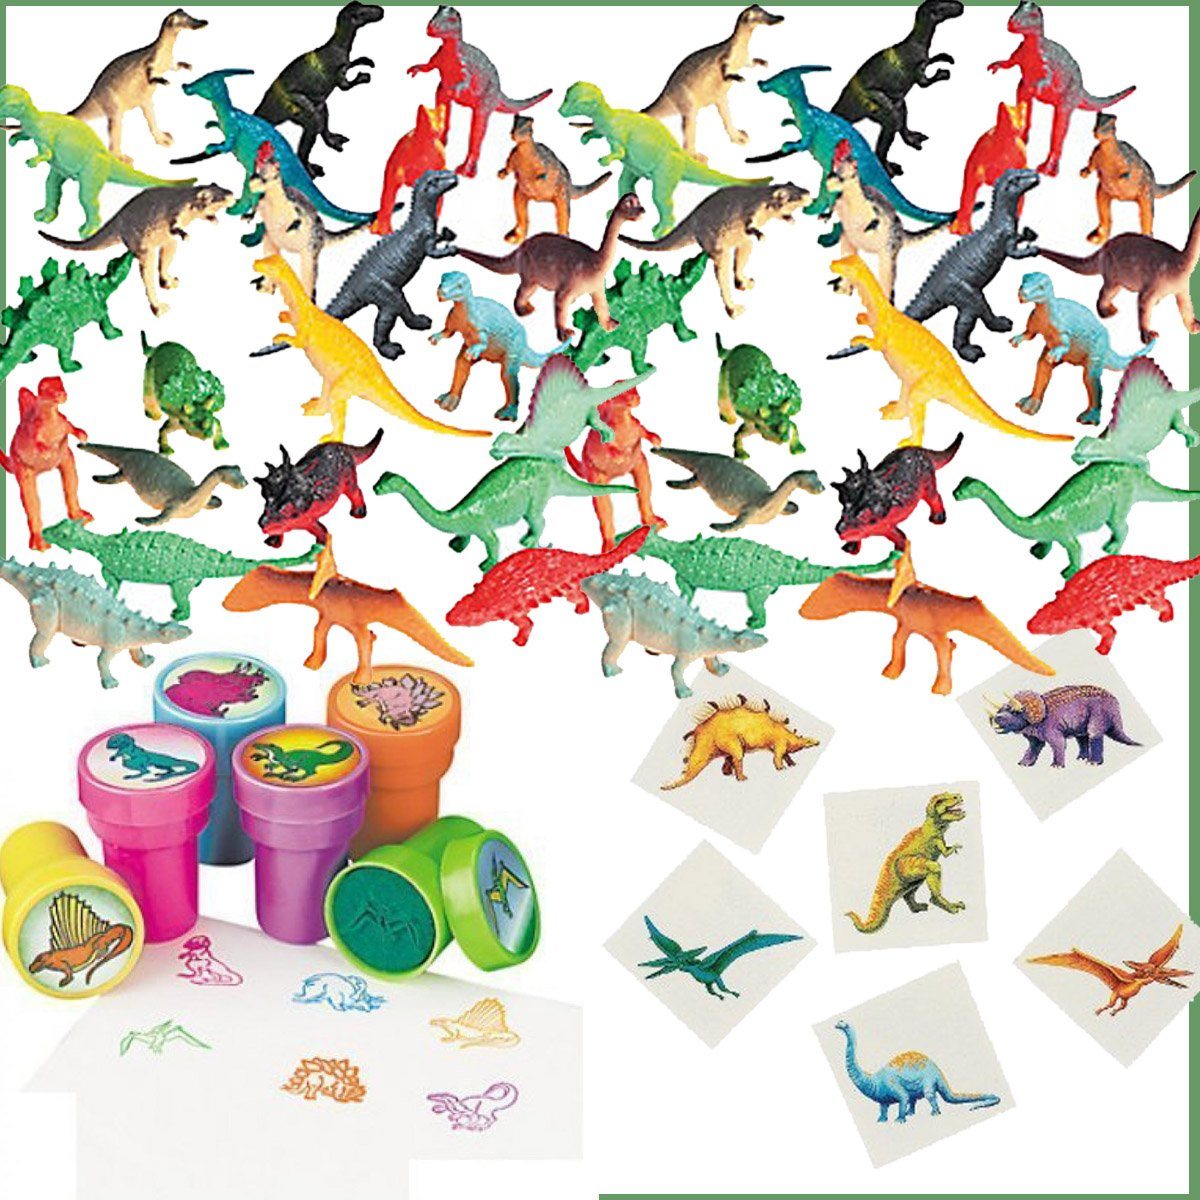 168 Piece Dinosaur Birthday Party Favors for 24 Kids - 24 Dinosaur Stampers, 72 Dinosaur Tattoos, 72 Dinosaur Mini Figures plus Party Game Ideas by Dinosaur Party Favors